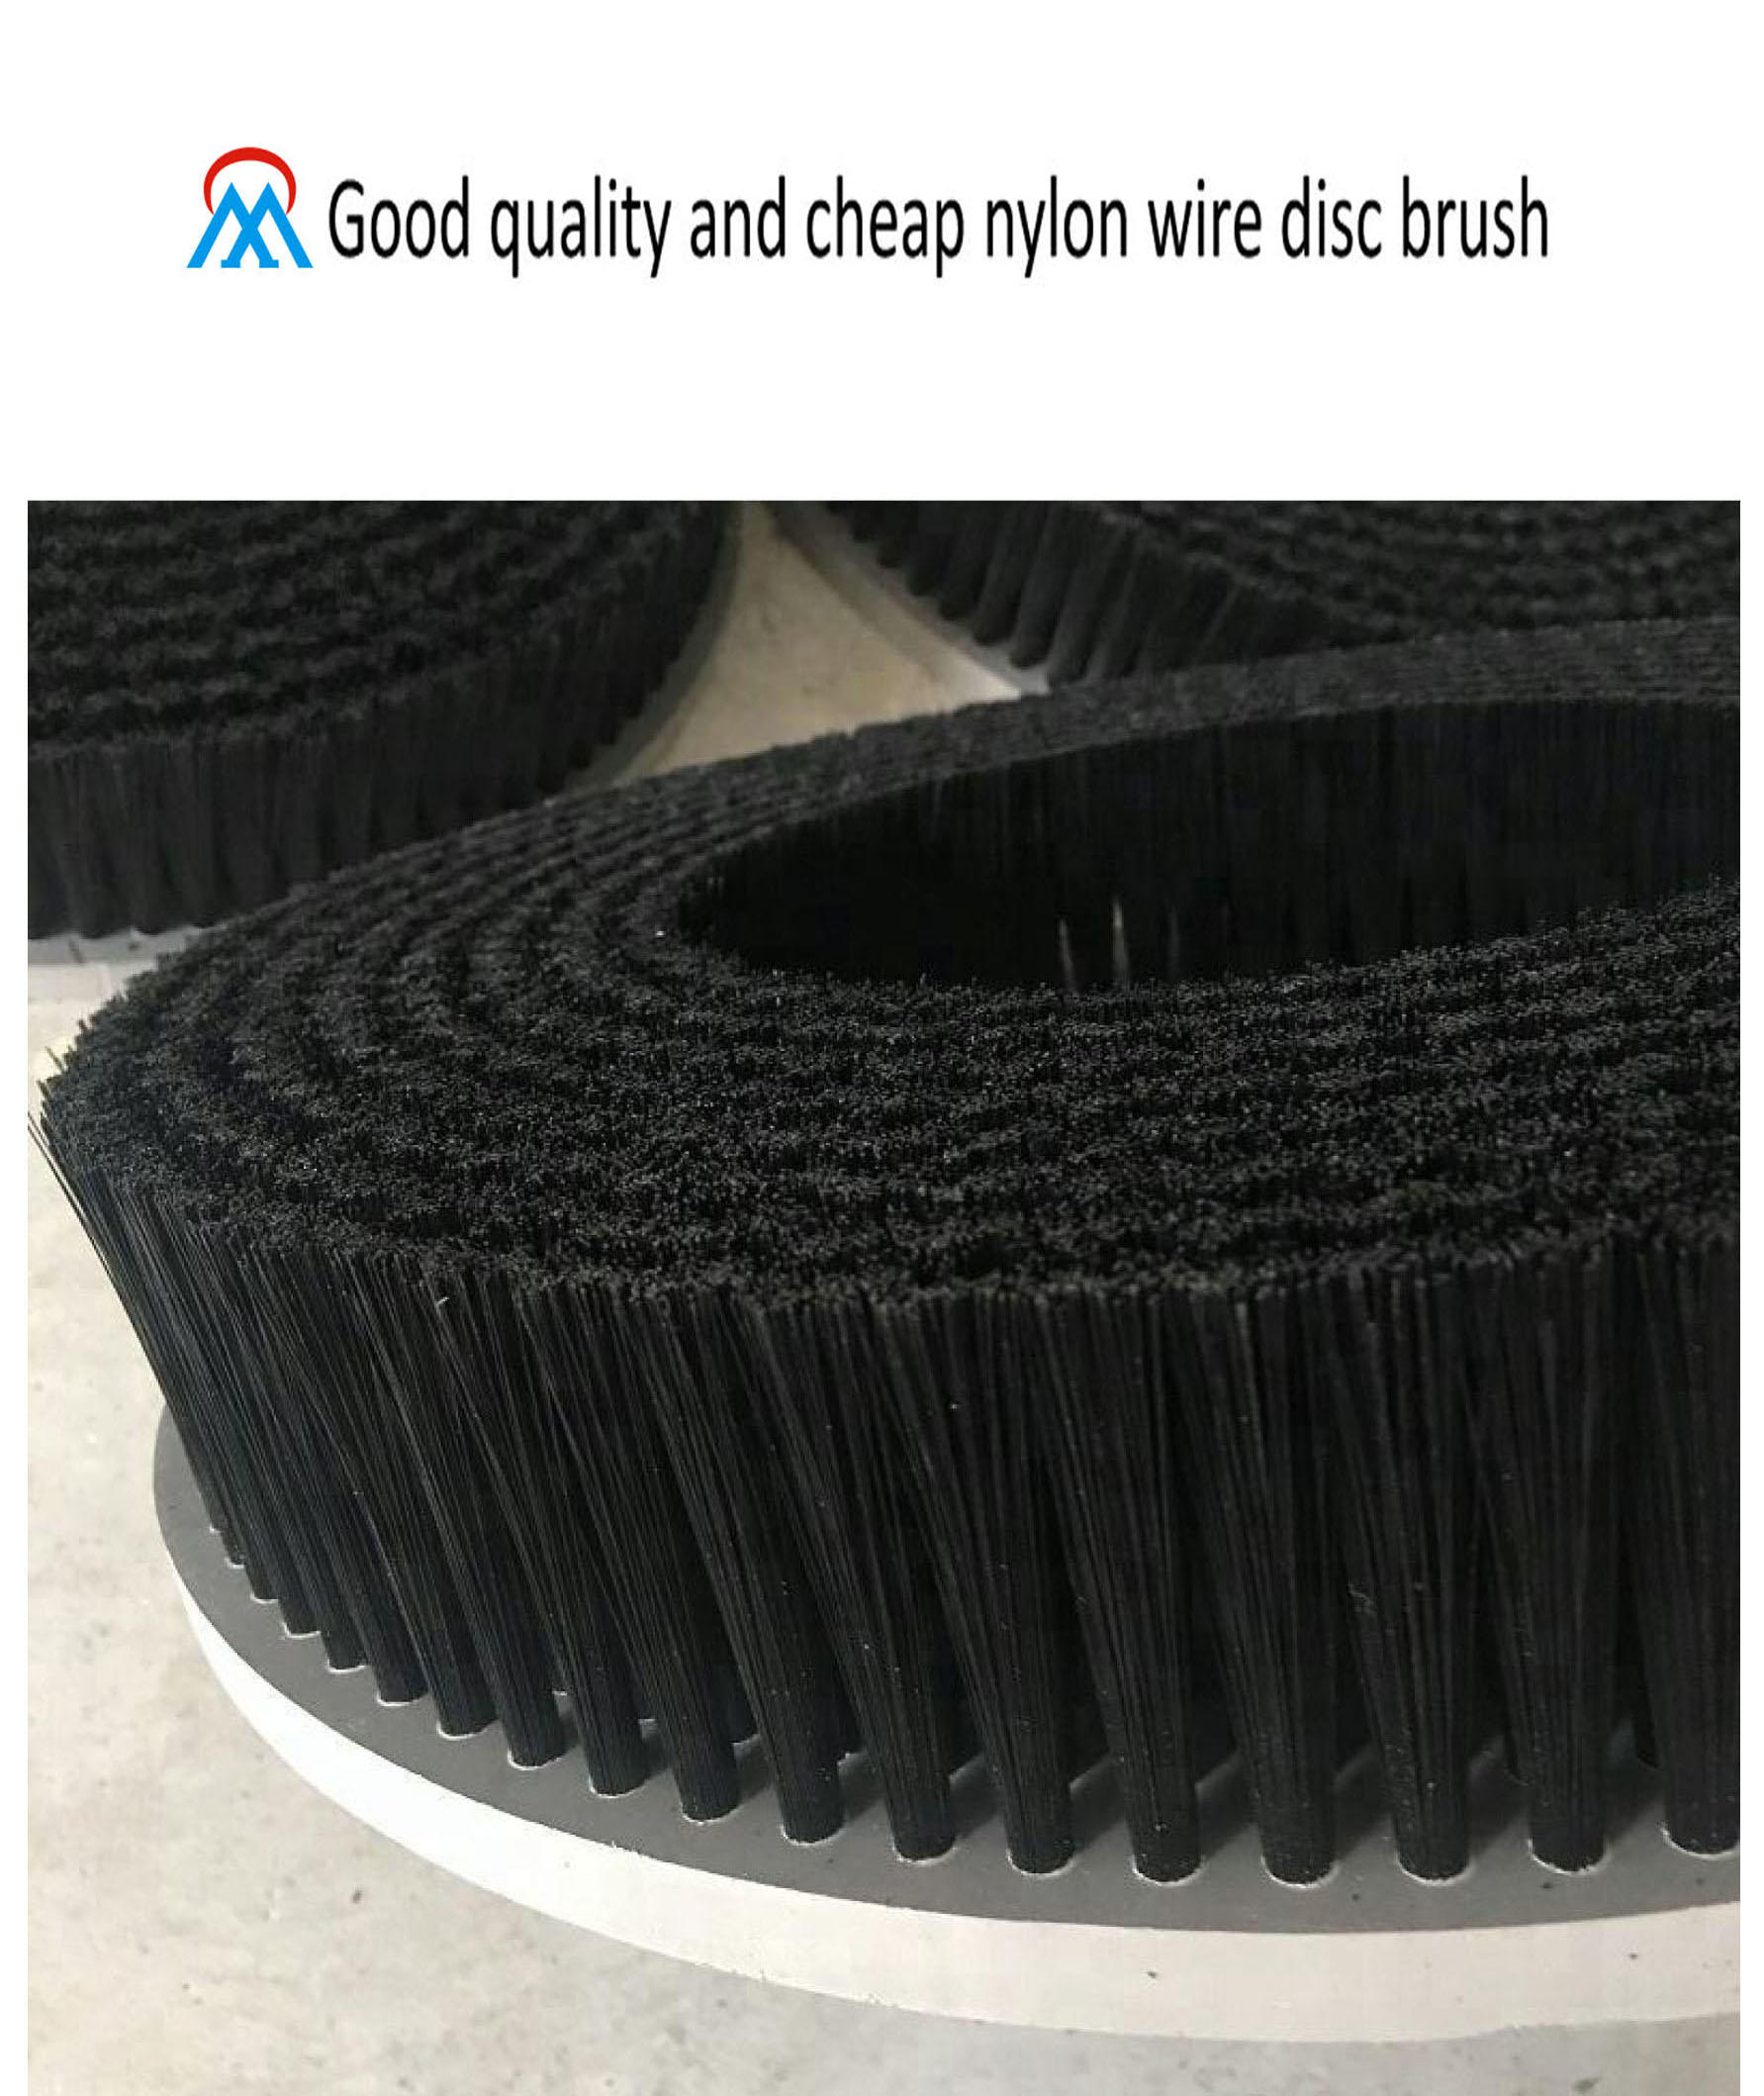 Good quality and cheap nylon wire disc brush